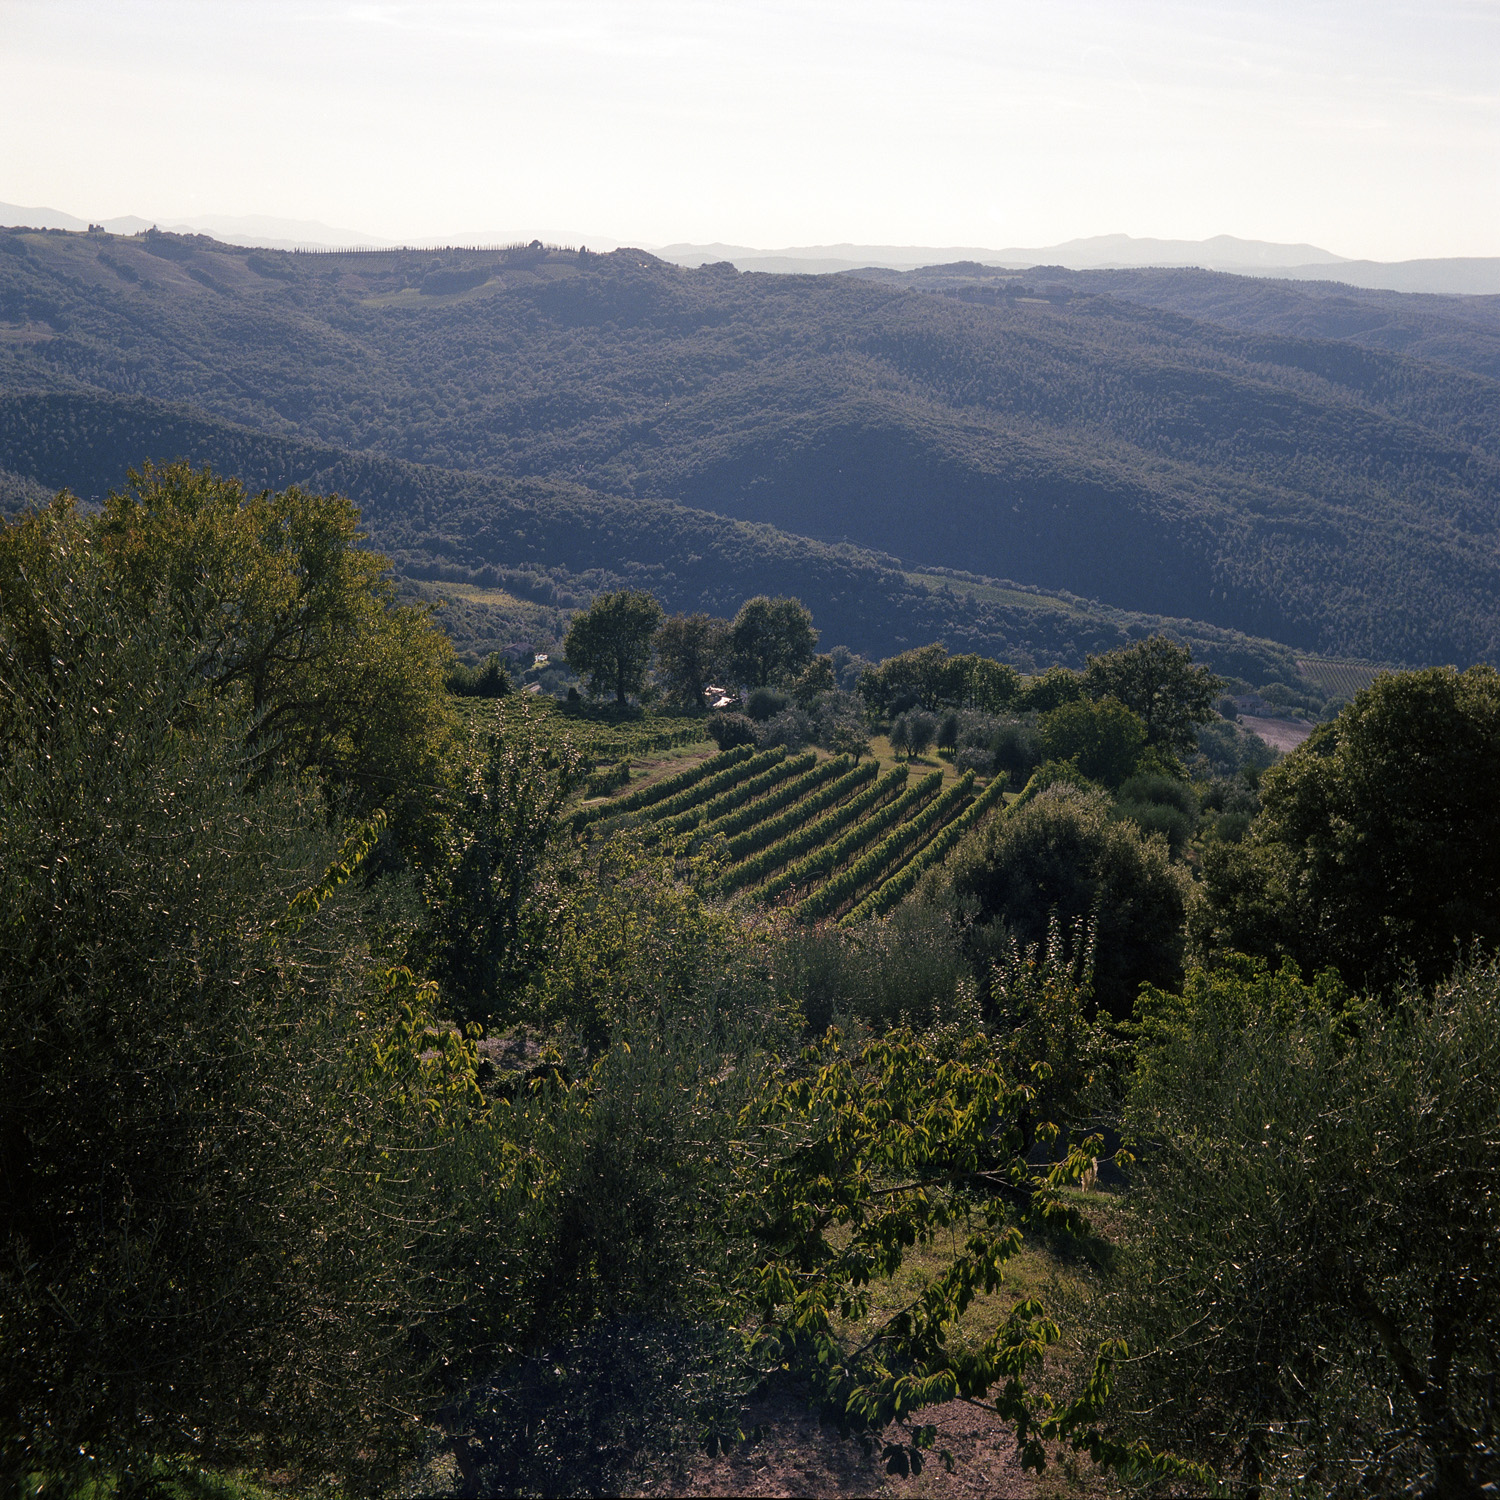 View from Montalcino